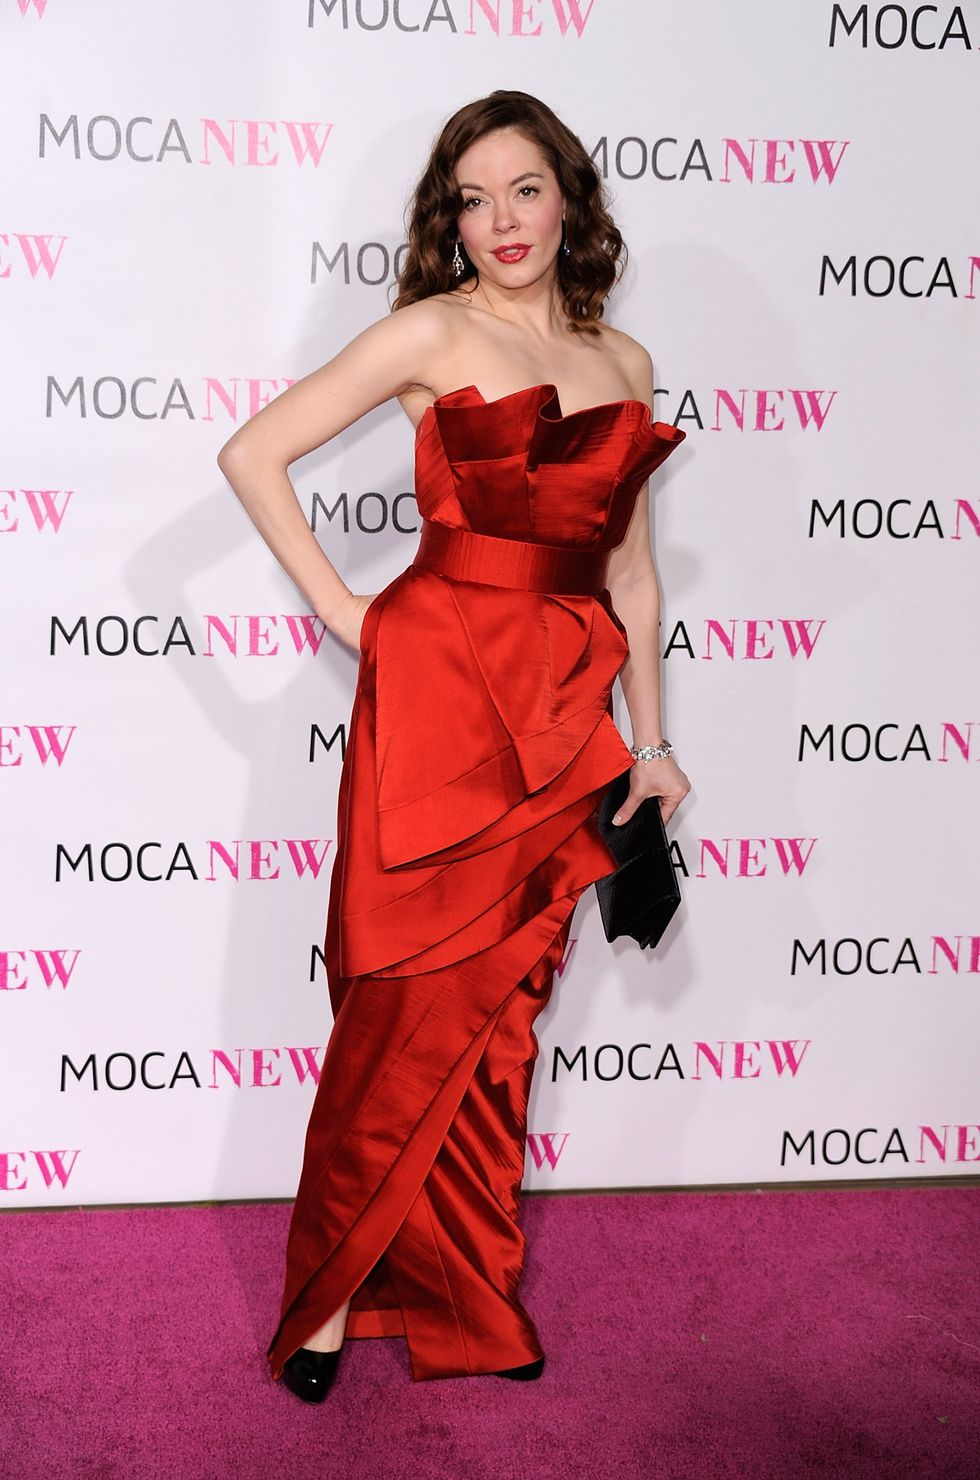 rose-mcgowan-moca-new-30th-anniversary-gala-in-los-angeles-01